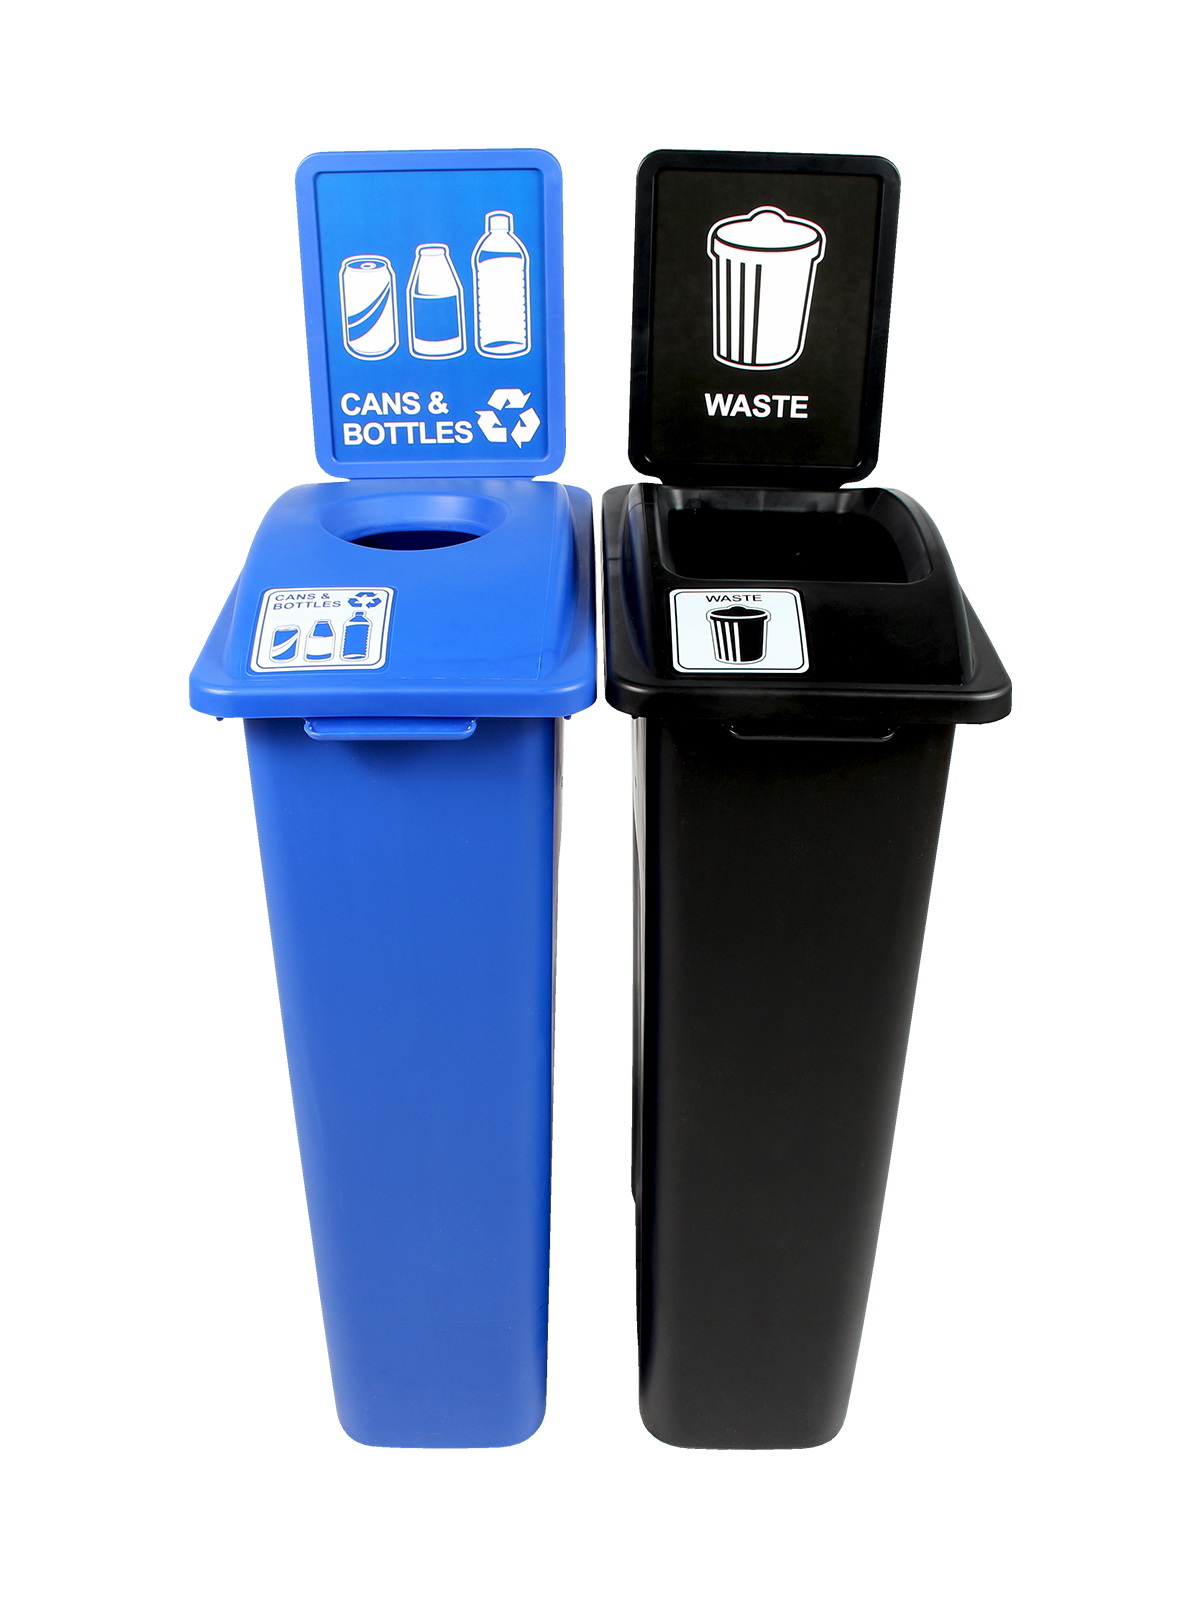 WASTE WATCHER - Double - Cans & Bottles-Waste - Circle-Full - Blue-Black